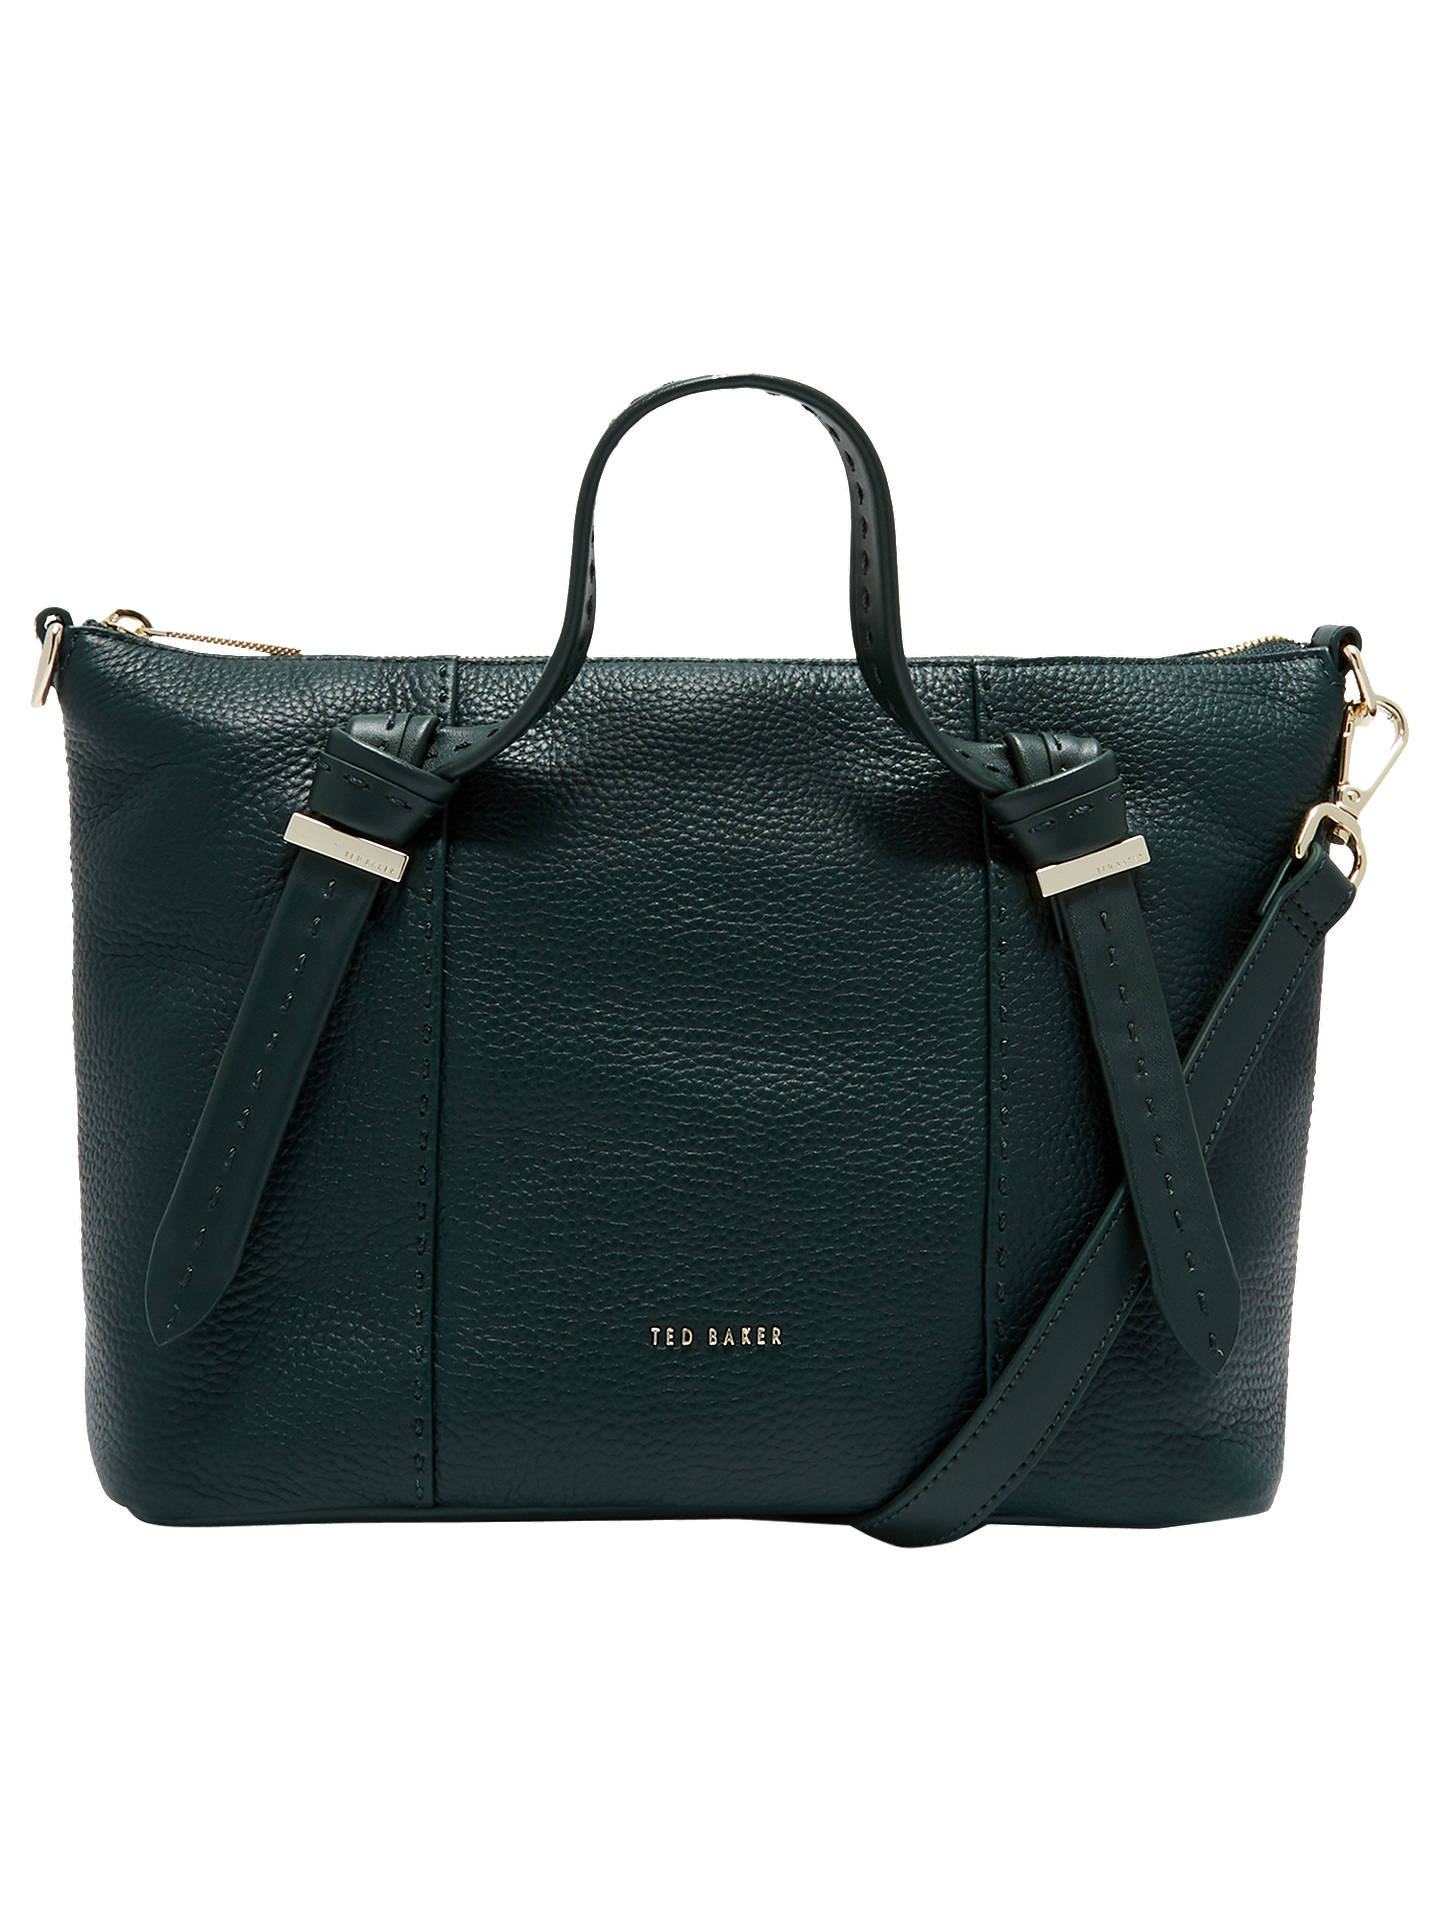 27c0e94969 Buy Ted Baker Olmia Knotted Handle Small Leather Tote Bag